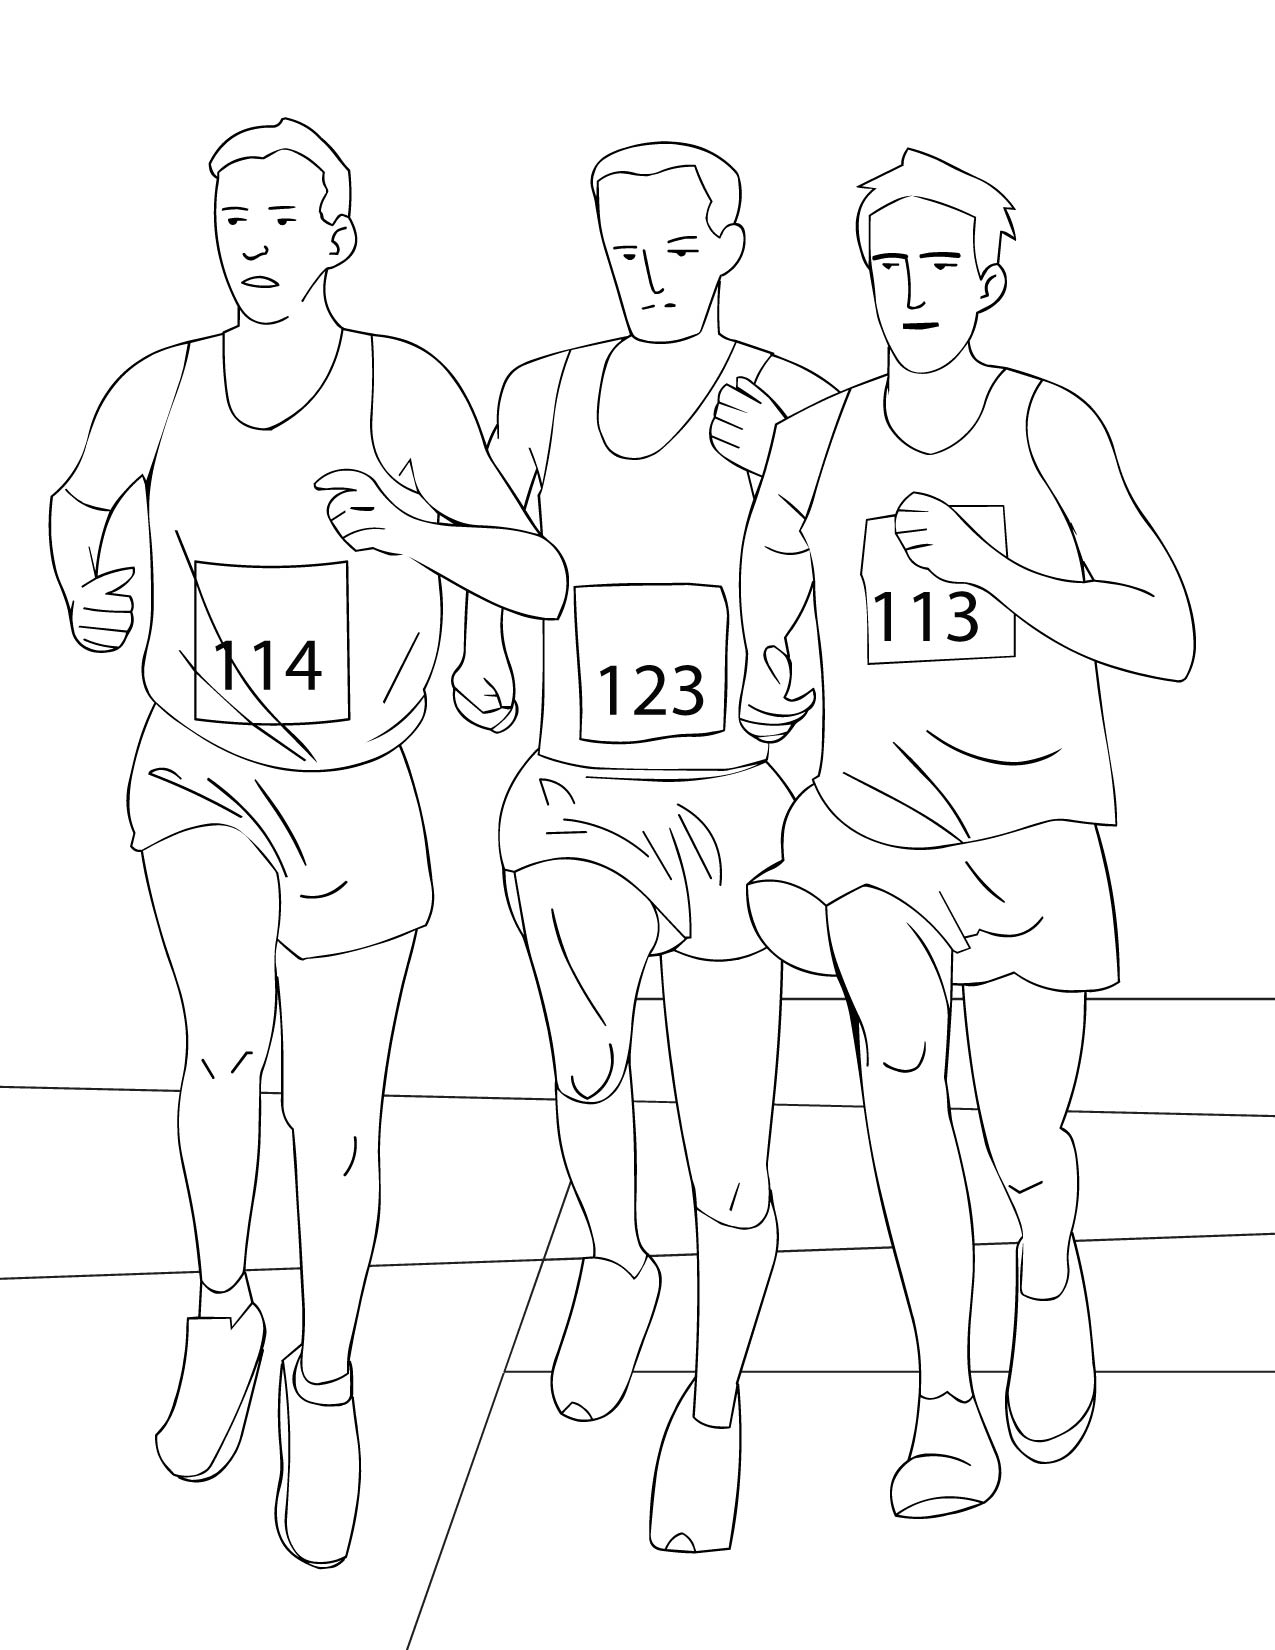 running colouring pages running coloring pages kidsuki running colouring pages